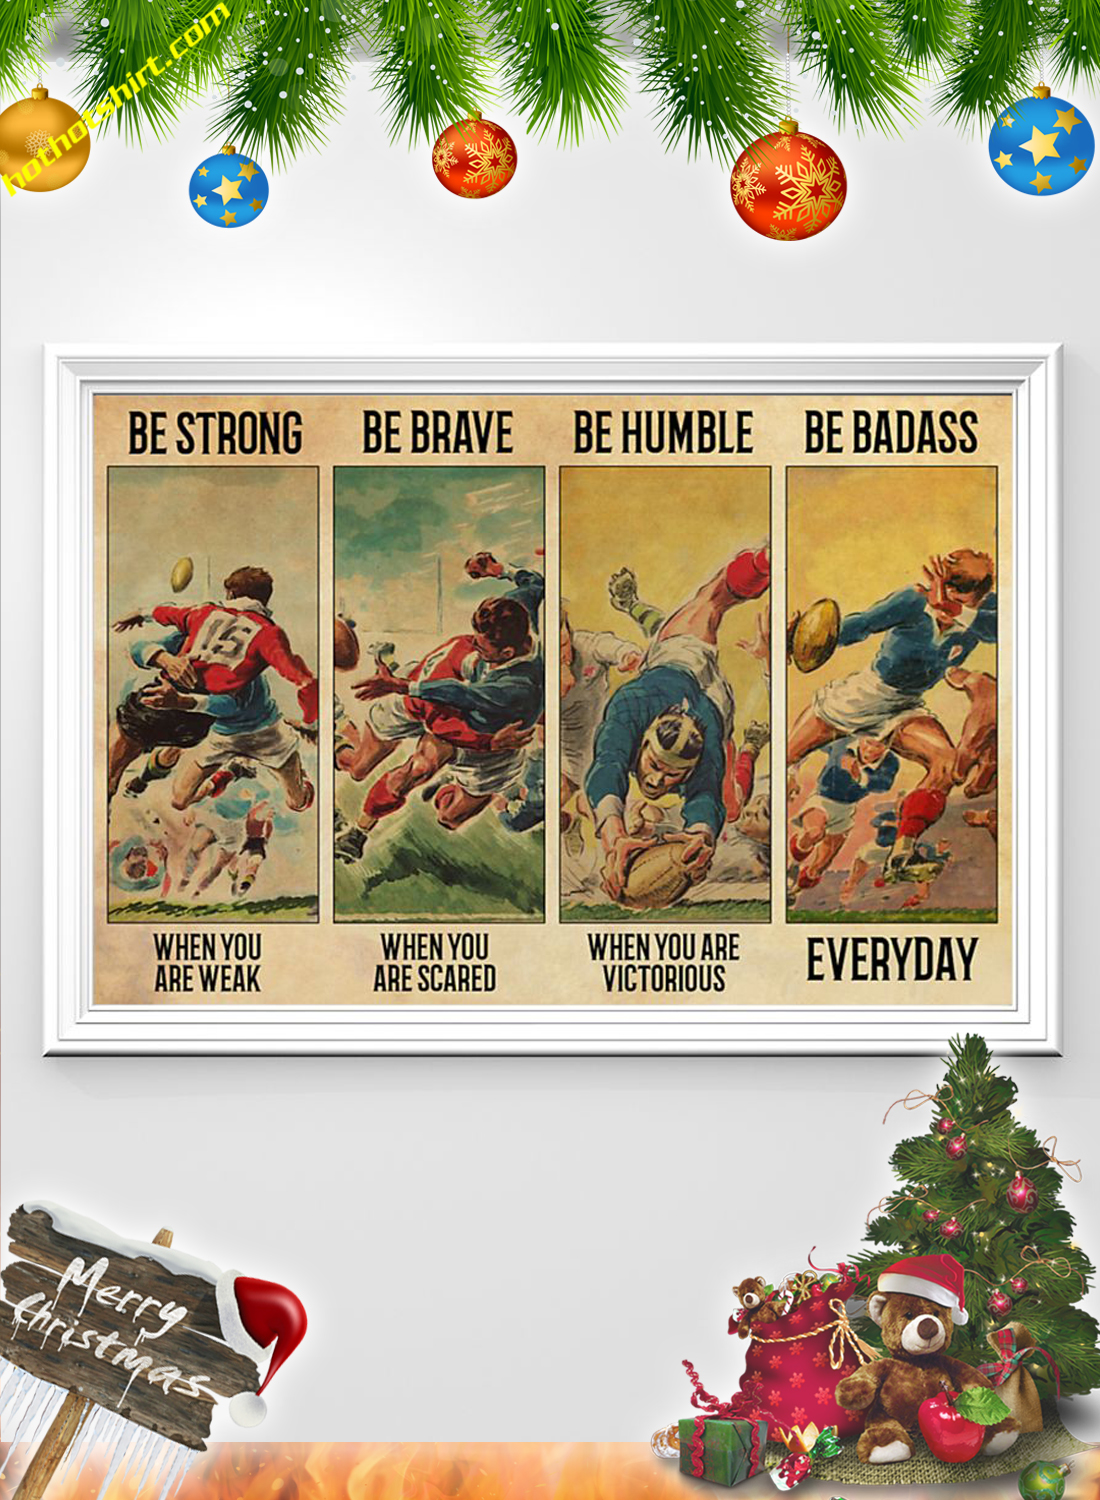 Vintage Rugby Be strong be brave be humble be badass poster 1